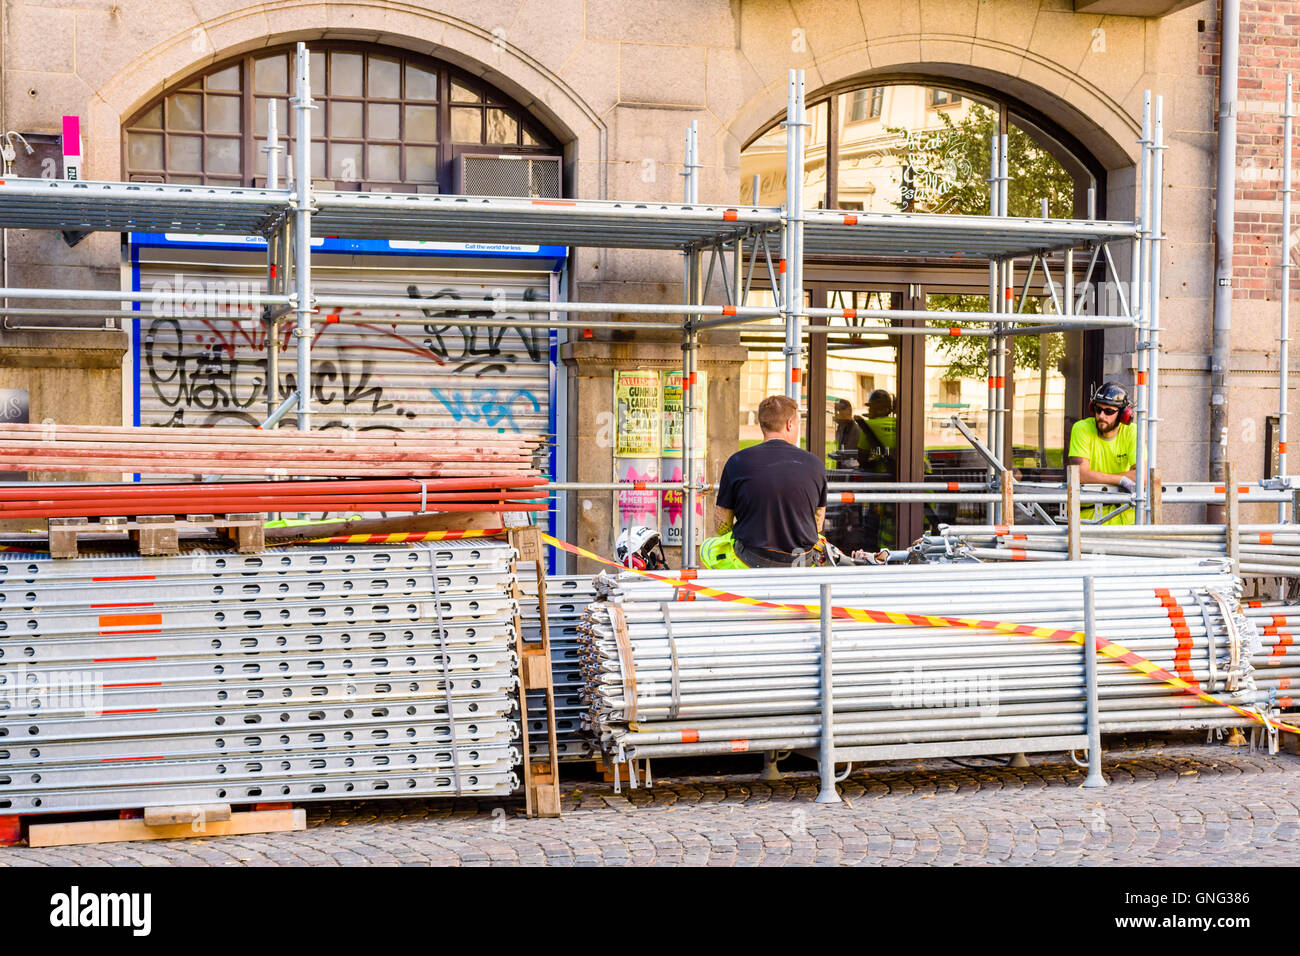 Lund, Sweden - August 24, 2016: Two male scaffolding builders taking a break during the day. Piles of metal poles - Stock Image